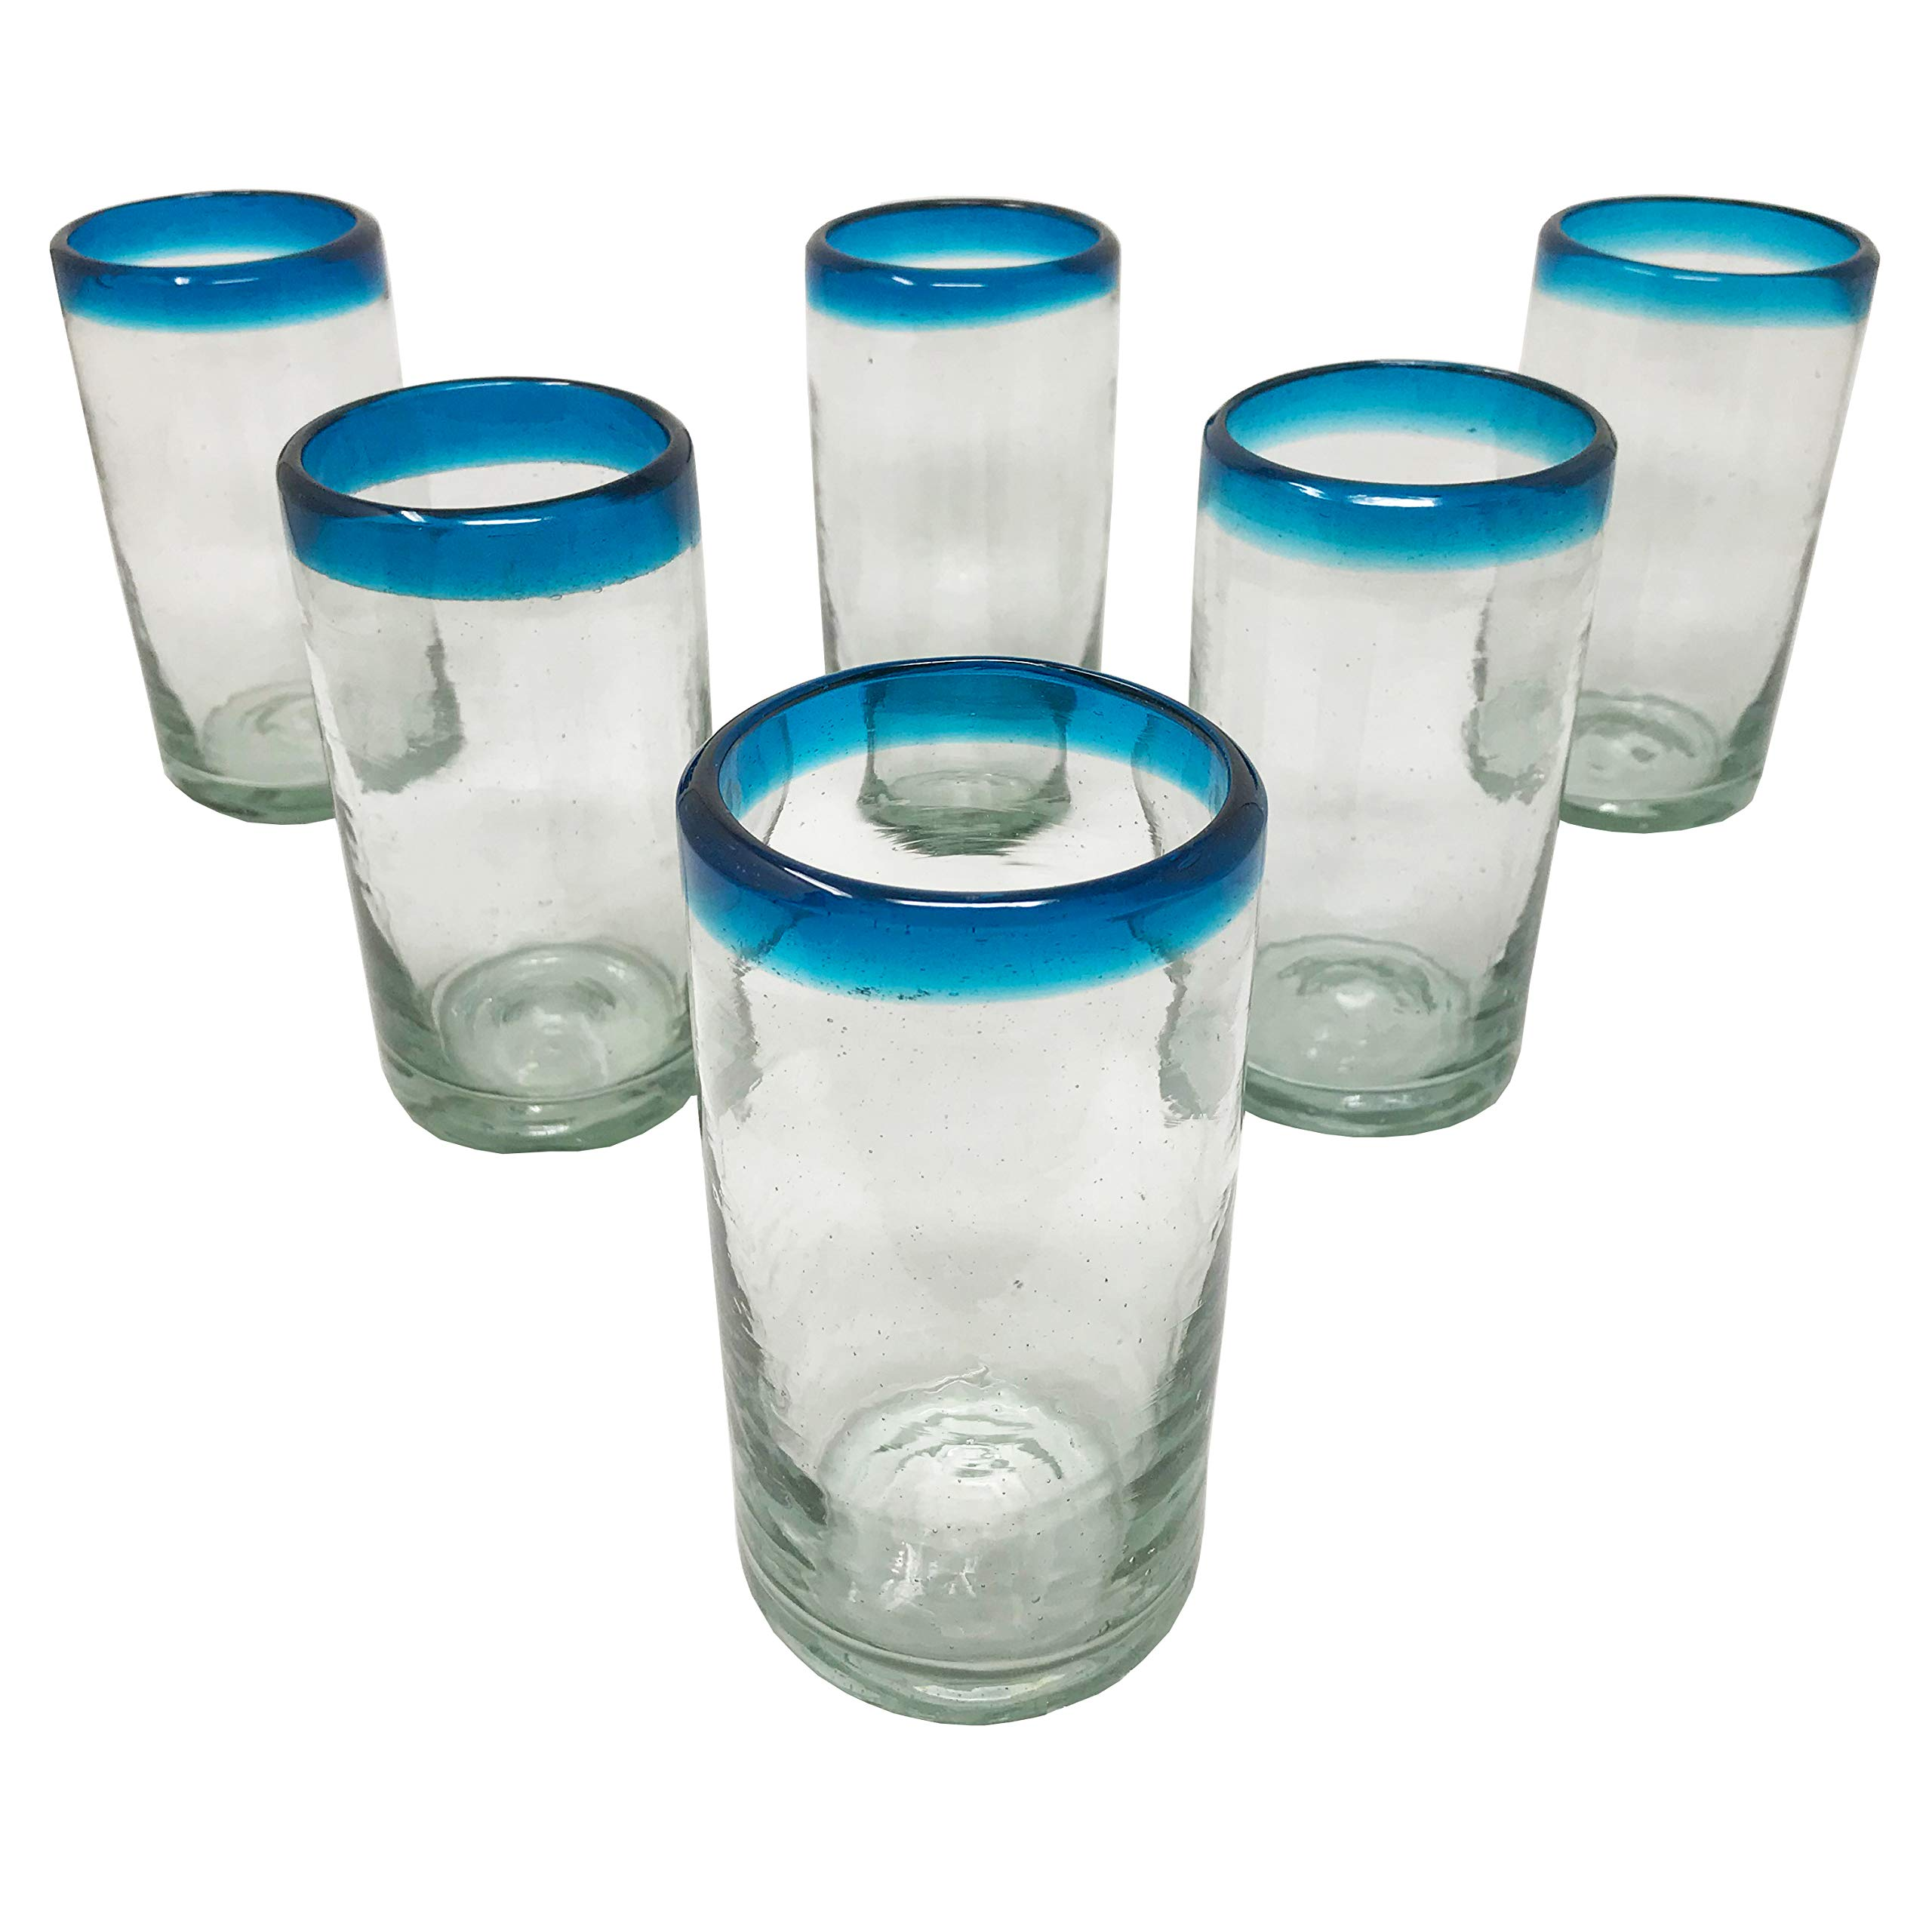 LA MEXICANA Mexican Hand Blown Drinking Glasses Cobalt Clear Sky Blue Rim Recycled Glass, 16 oz. (set of 6), Sky Blue Style